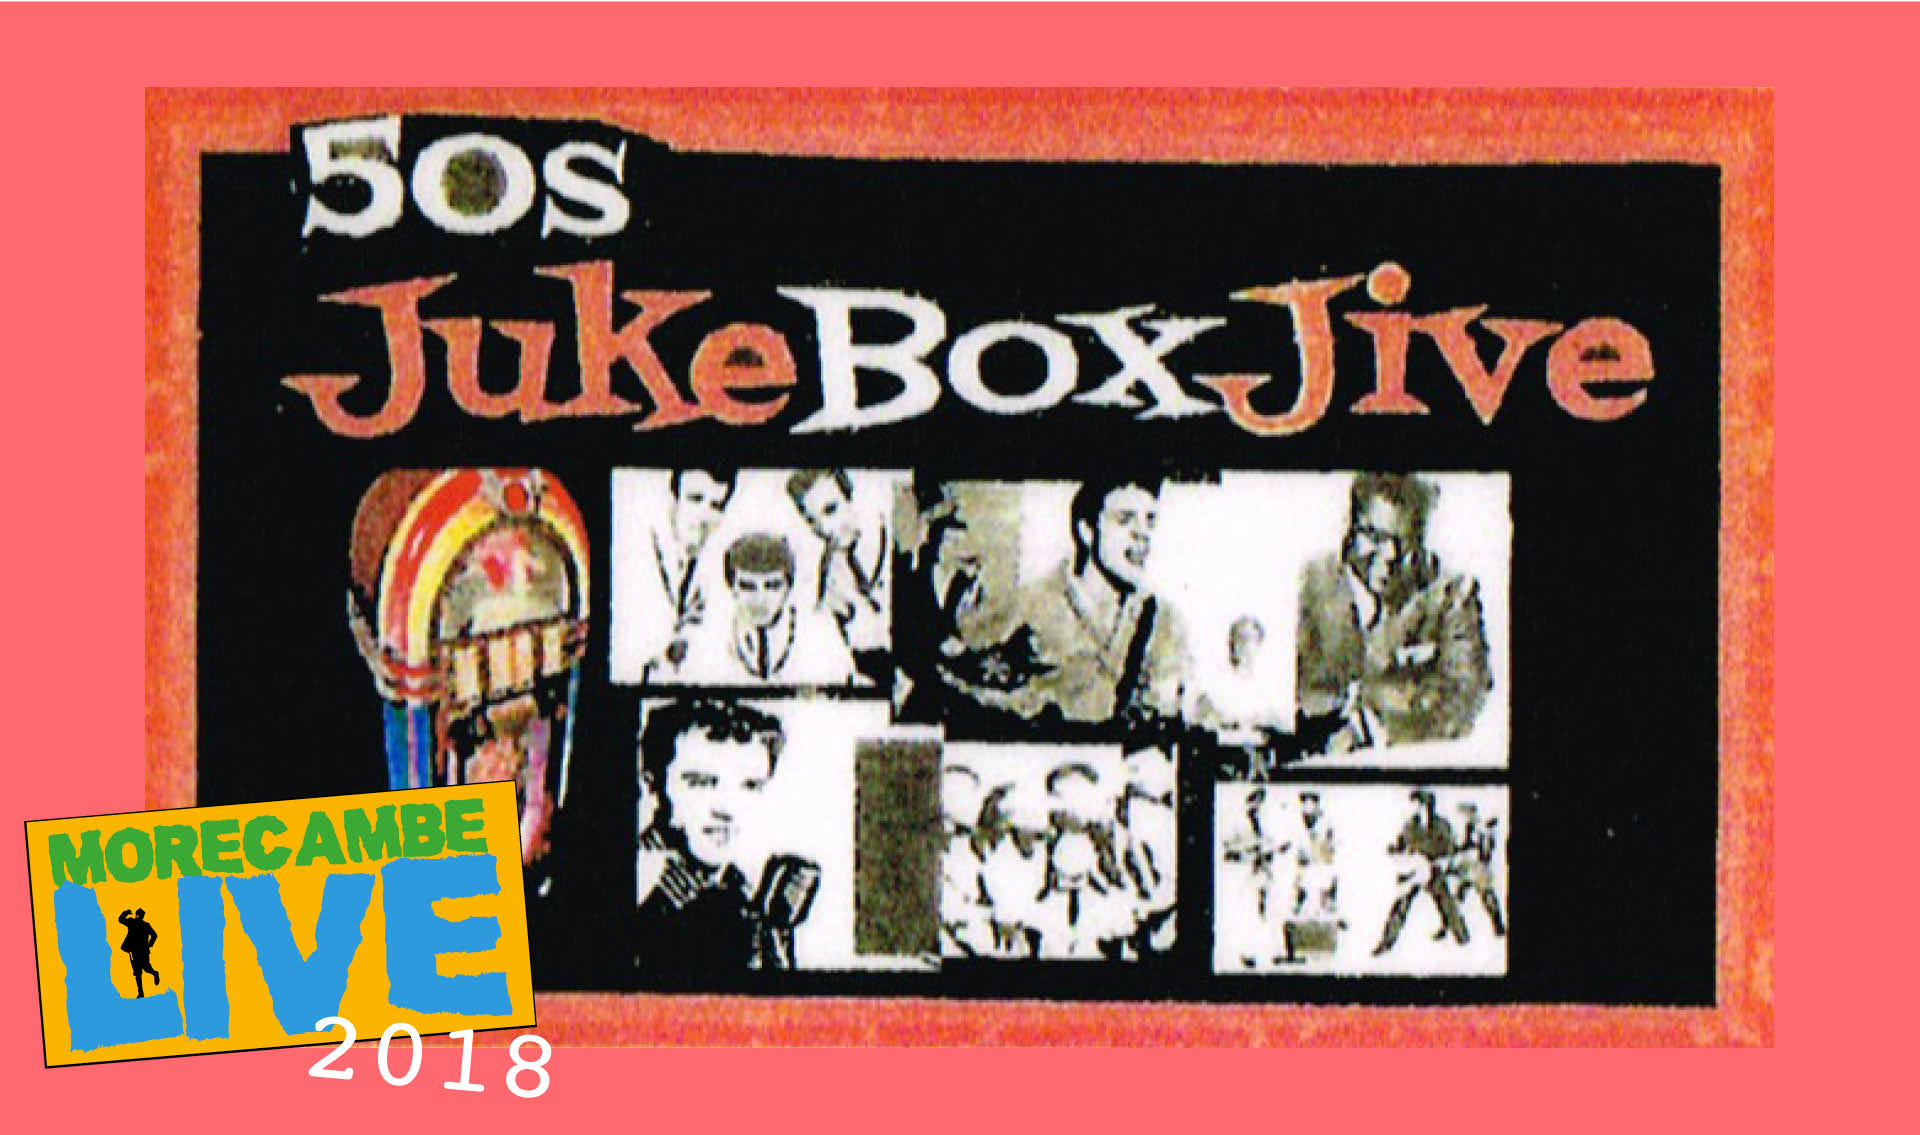 1960's Jukebox Jive